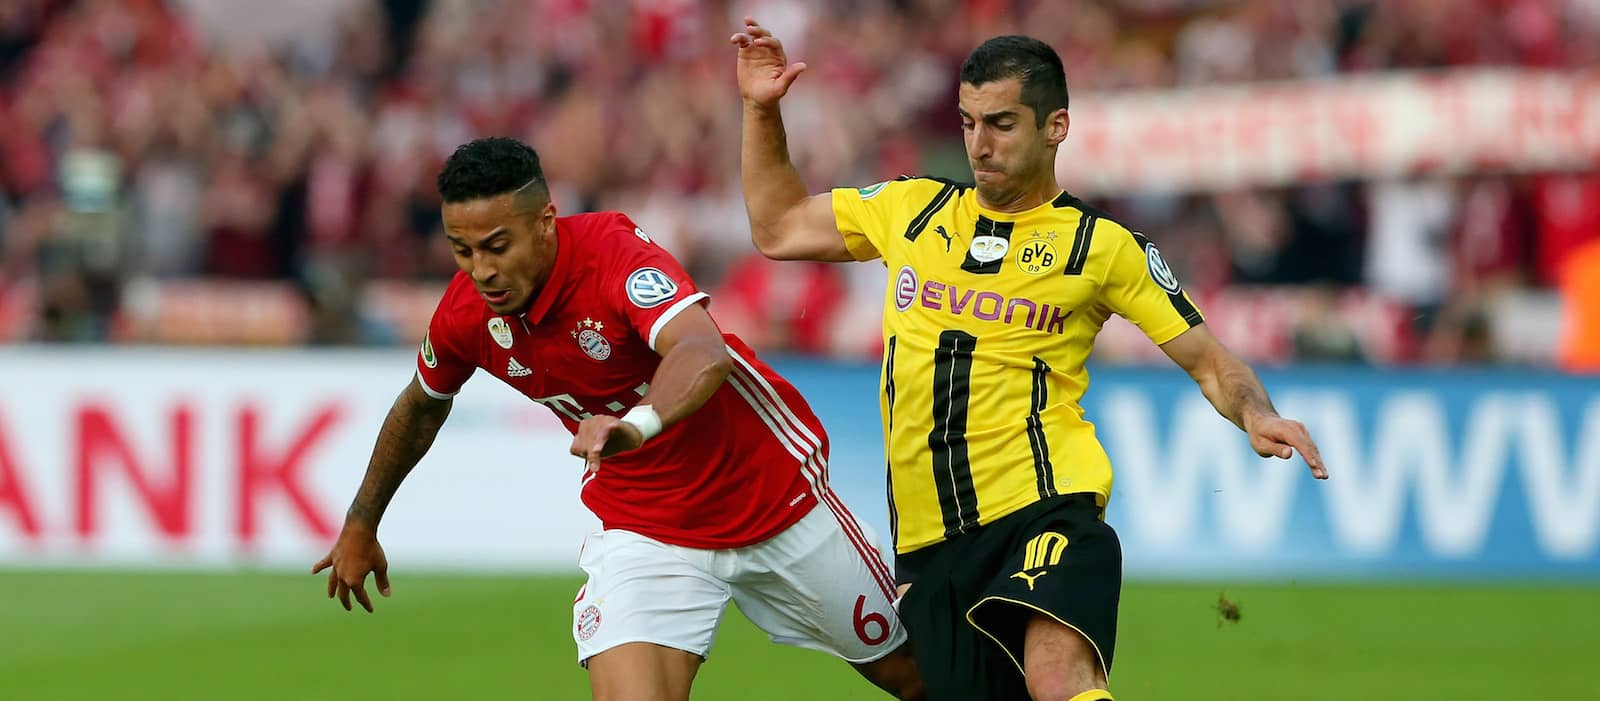 Video: Henrikh Mkhitaryan 2015/16 – Bundesliga goals and assists